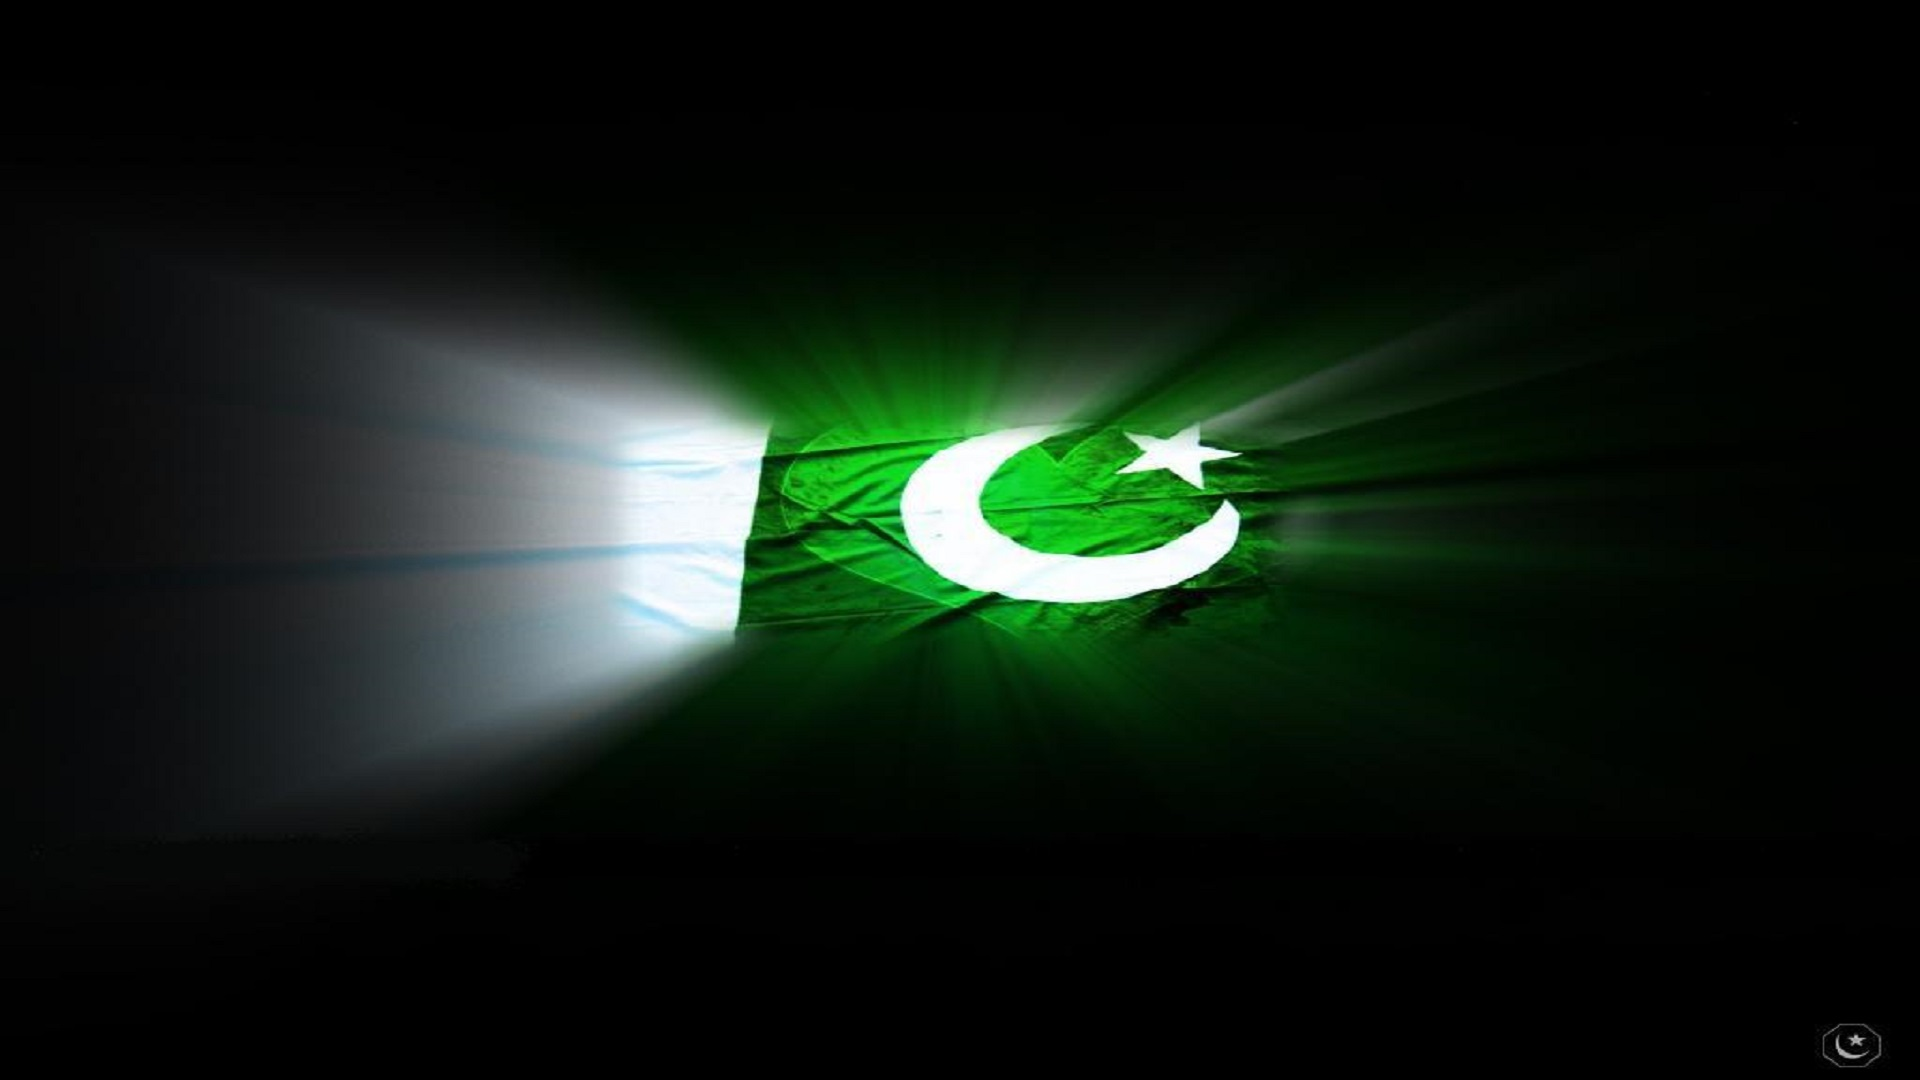 wao-amazing-top-pakistani-flag-with-black-shine-wallpaper-free-hd